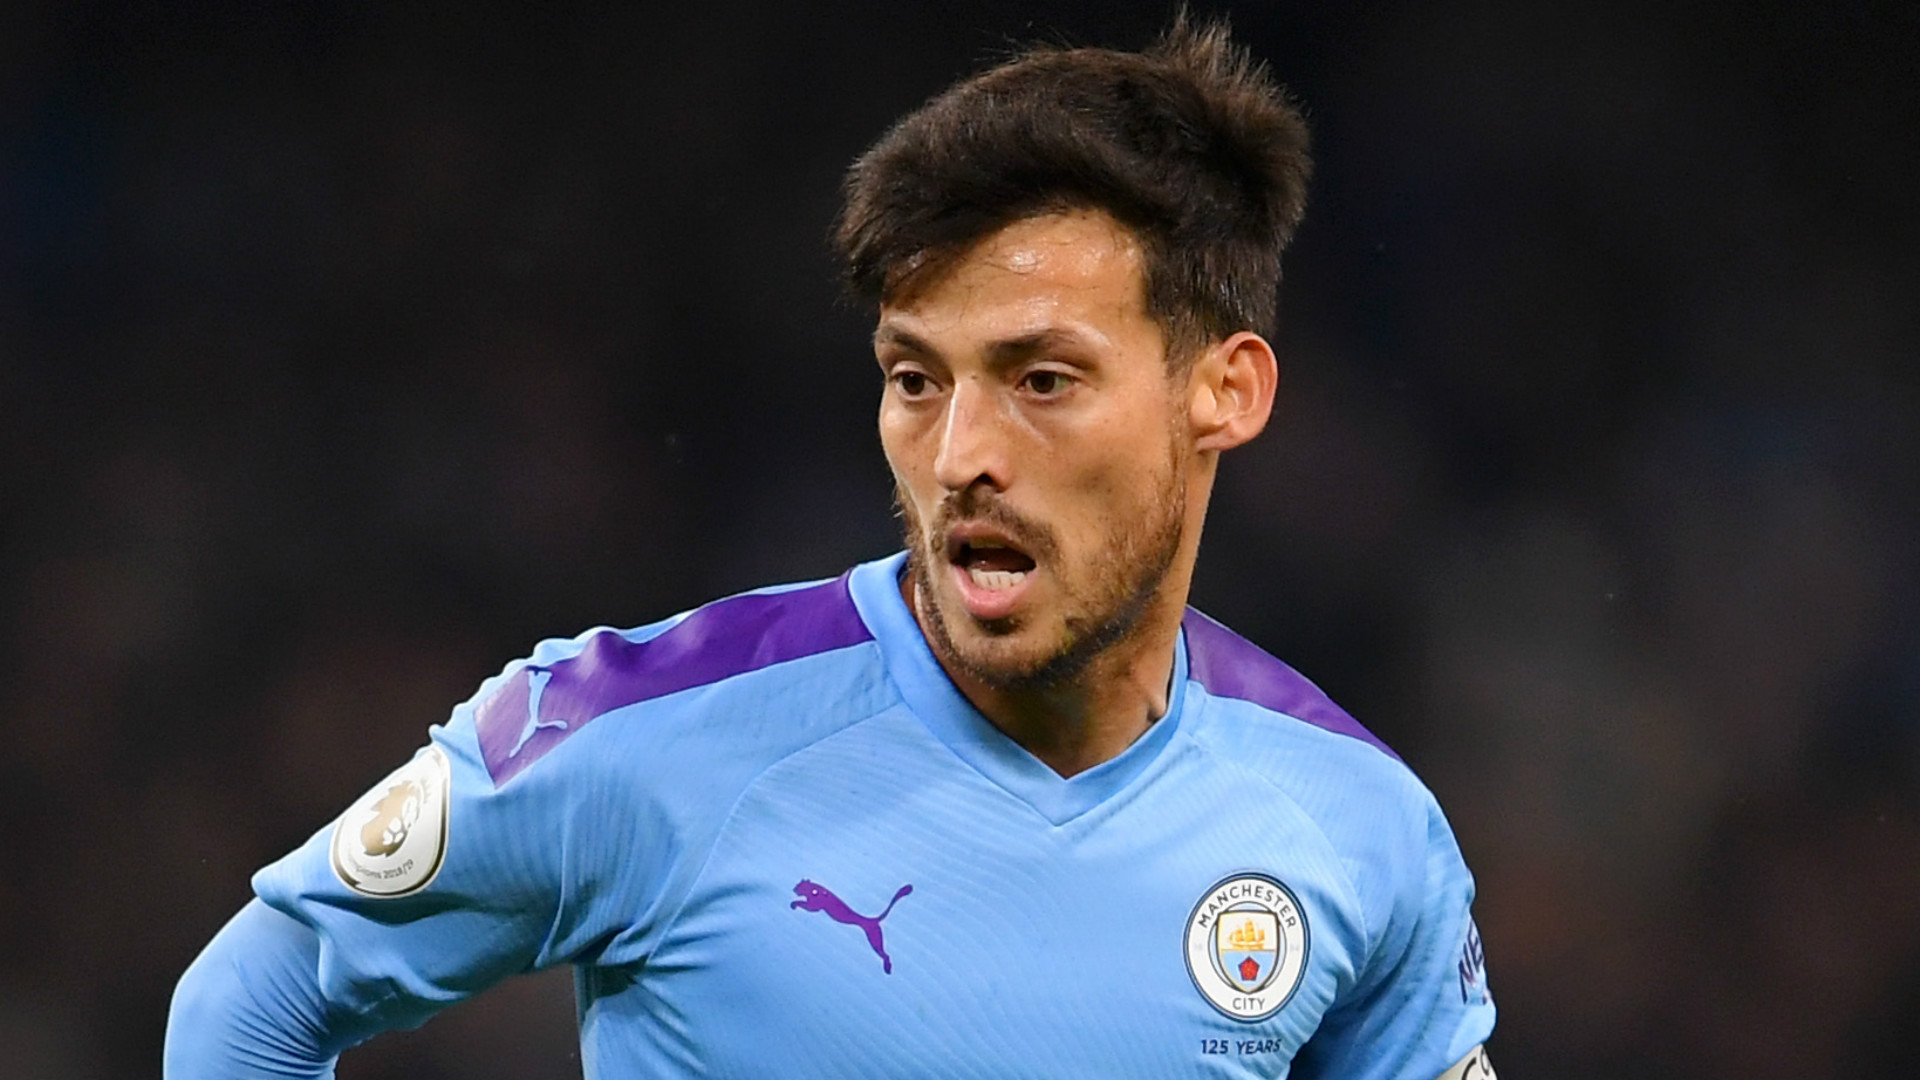 He's 'a bit of a b*stard' but quiet man David Silva is still ...